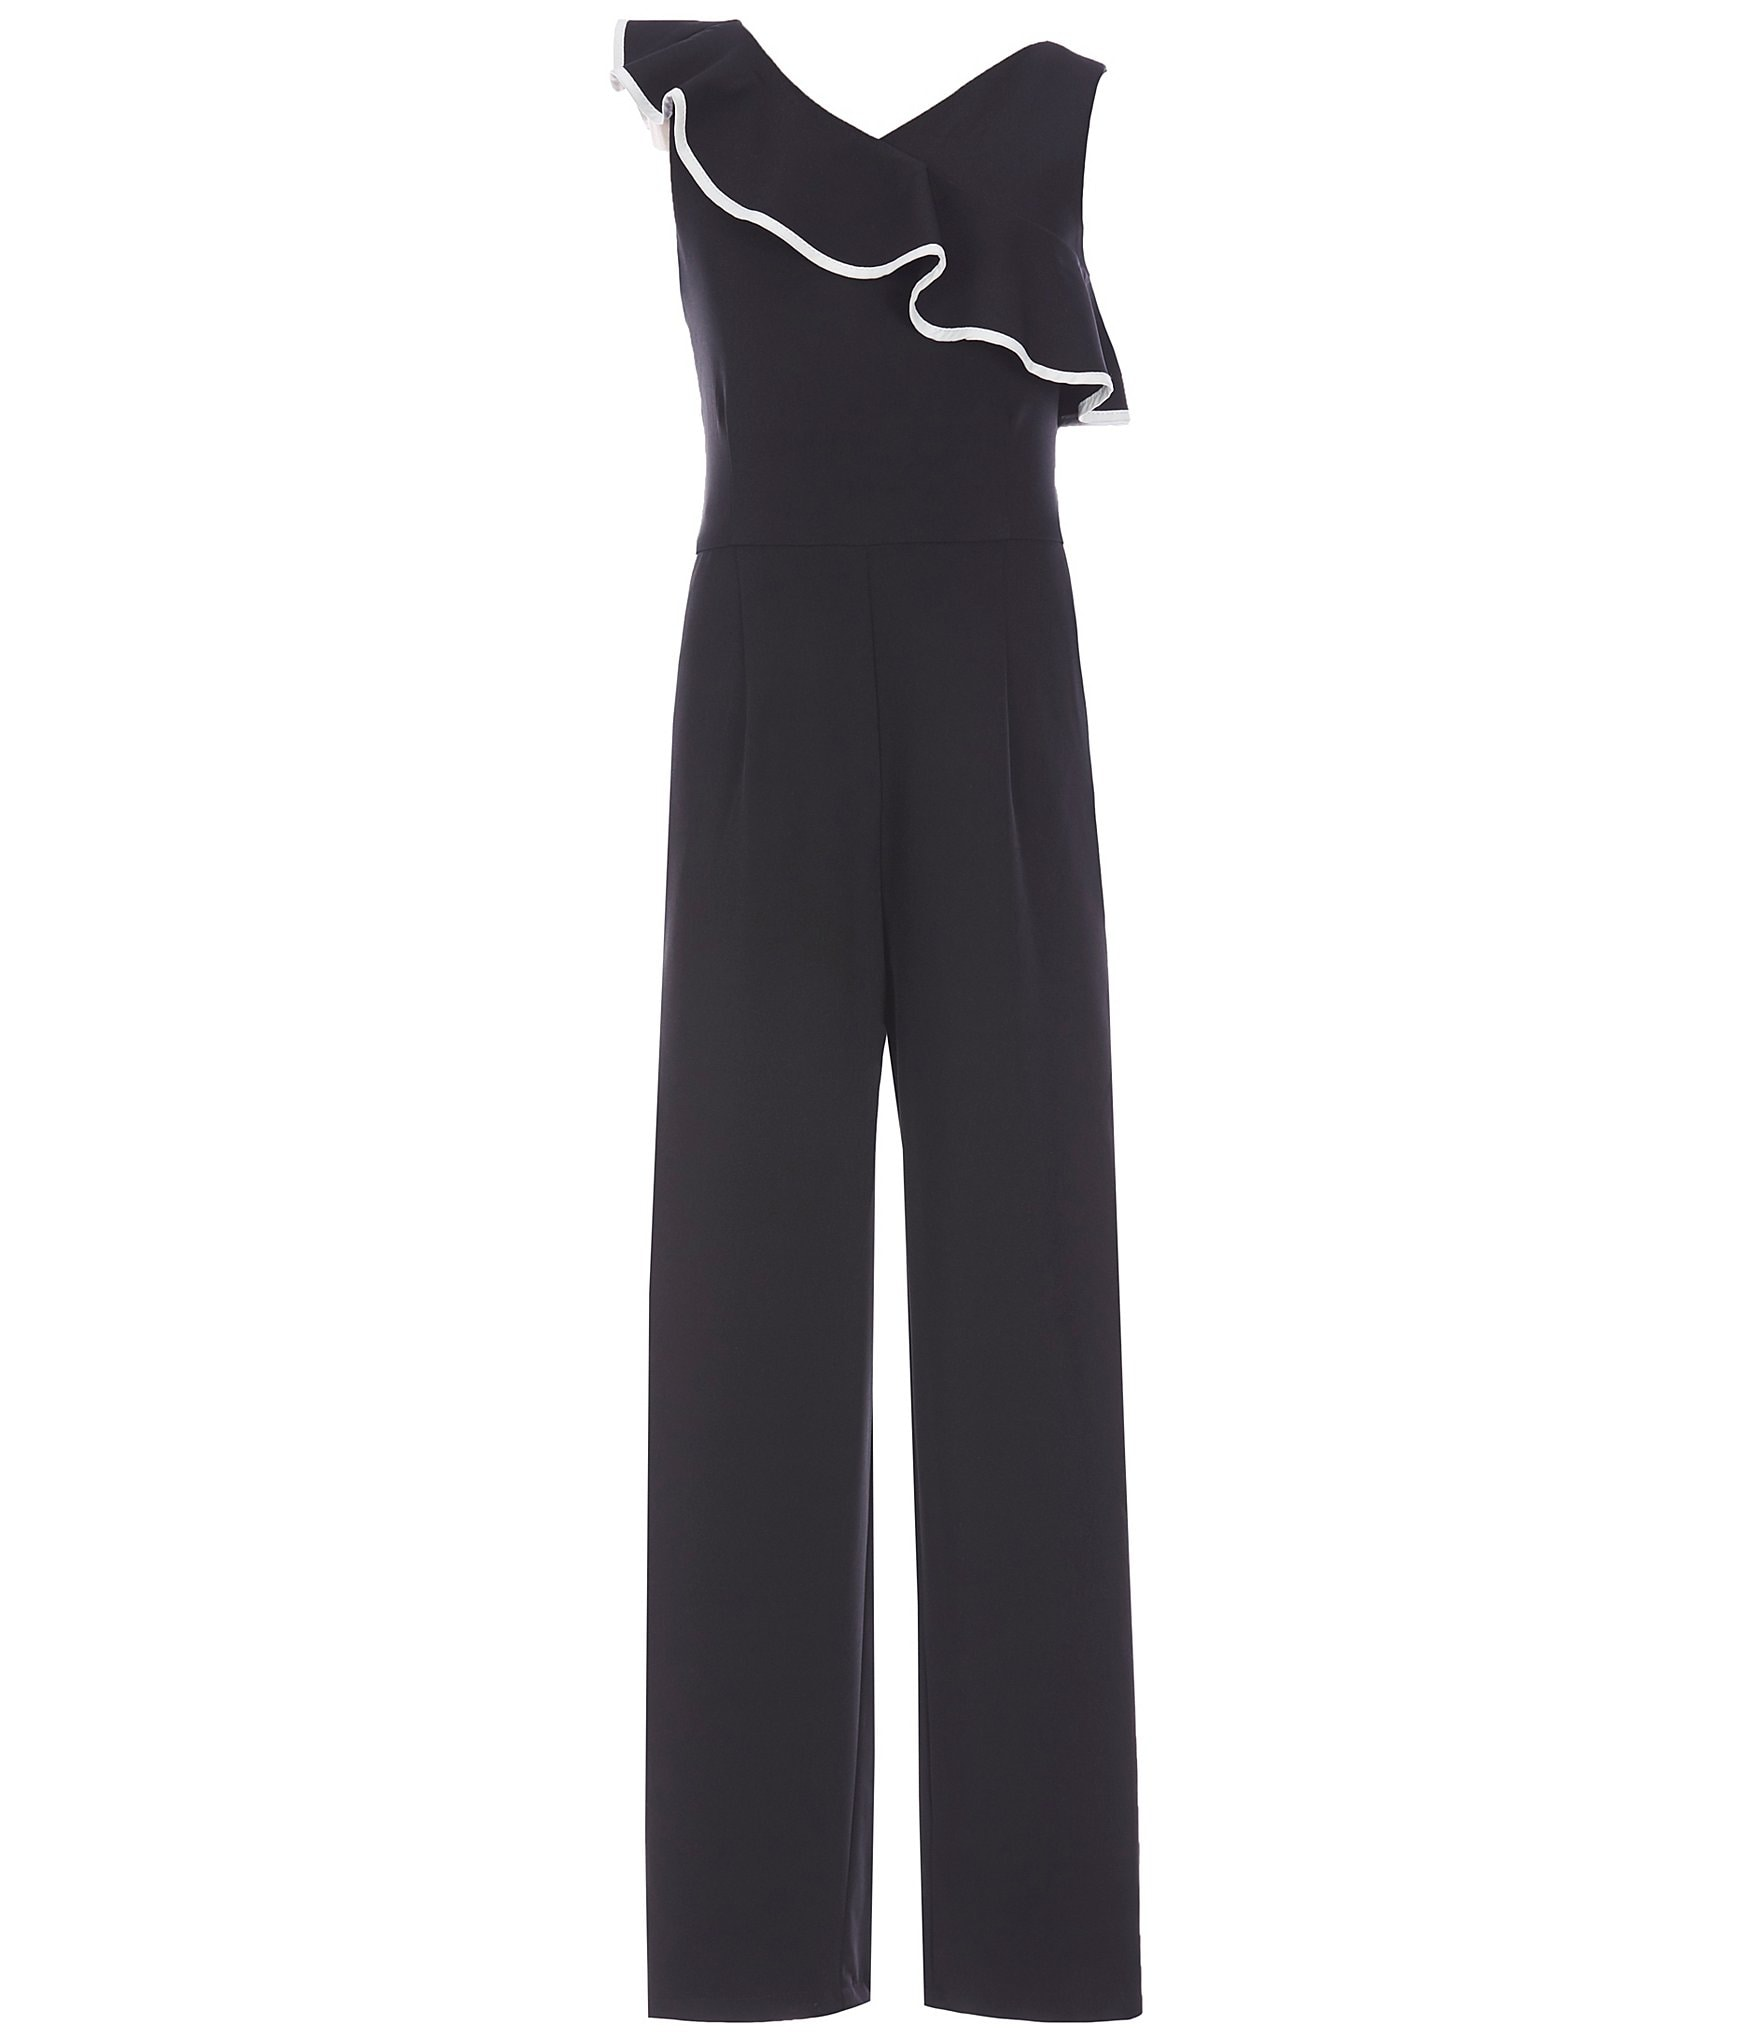 buy > big girl jumpsuits, Up to 62% OFF